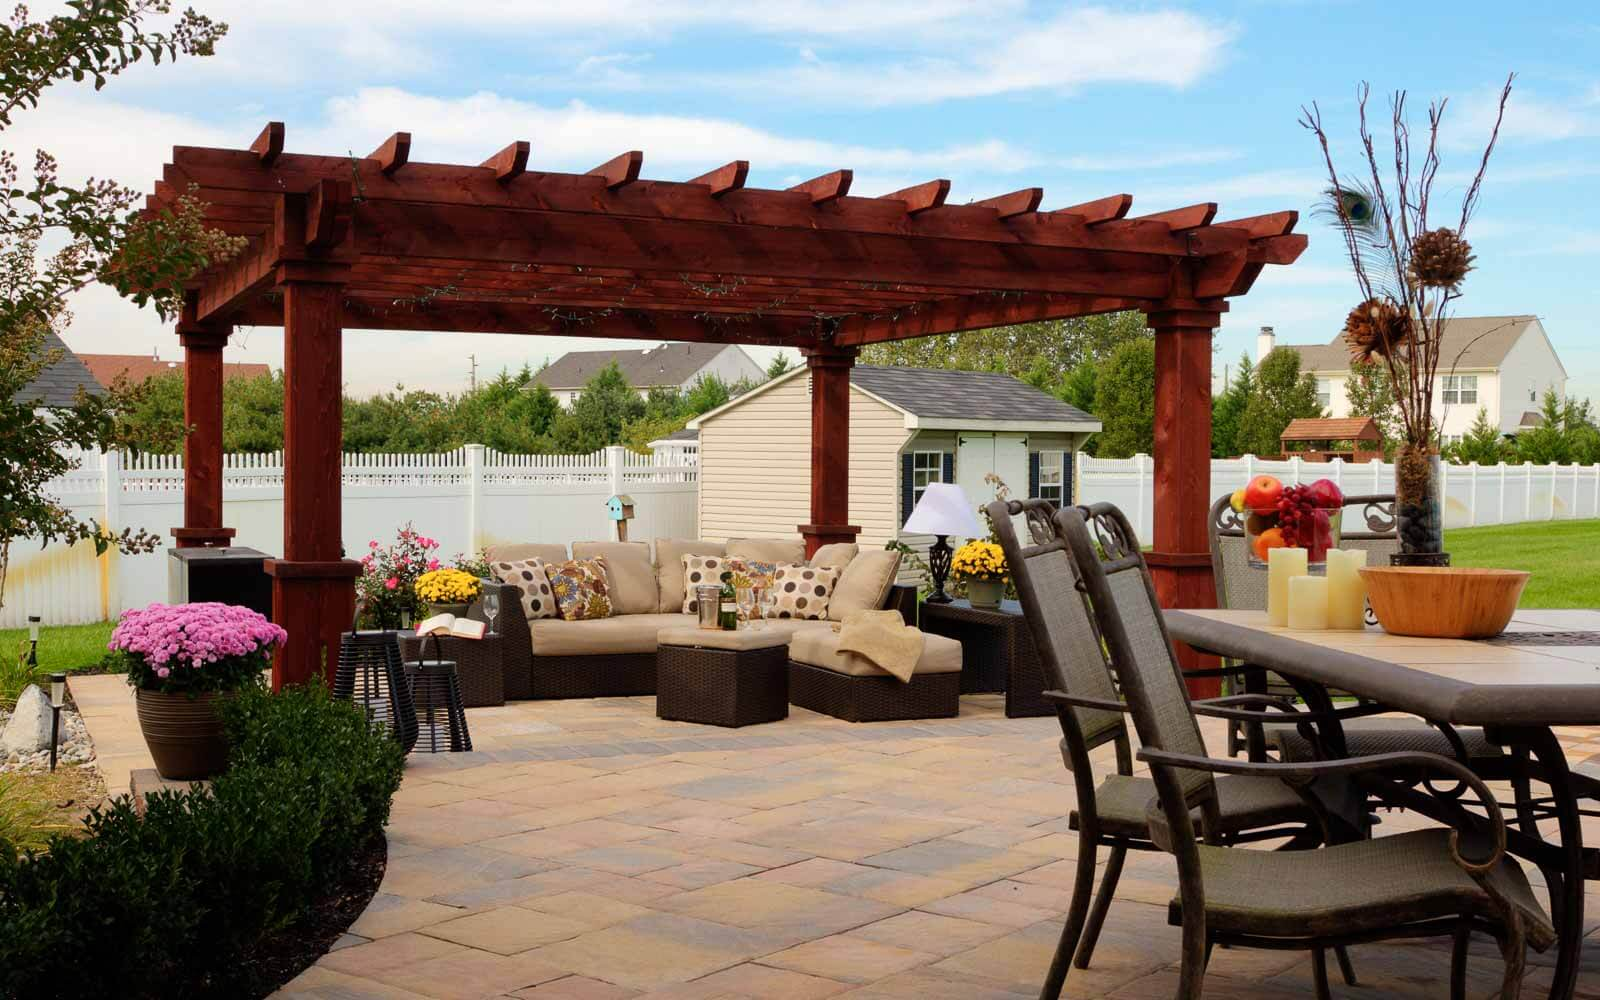 Artisan Wood Pergolas | River View Outdoor Products